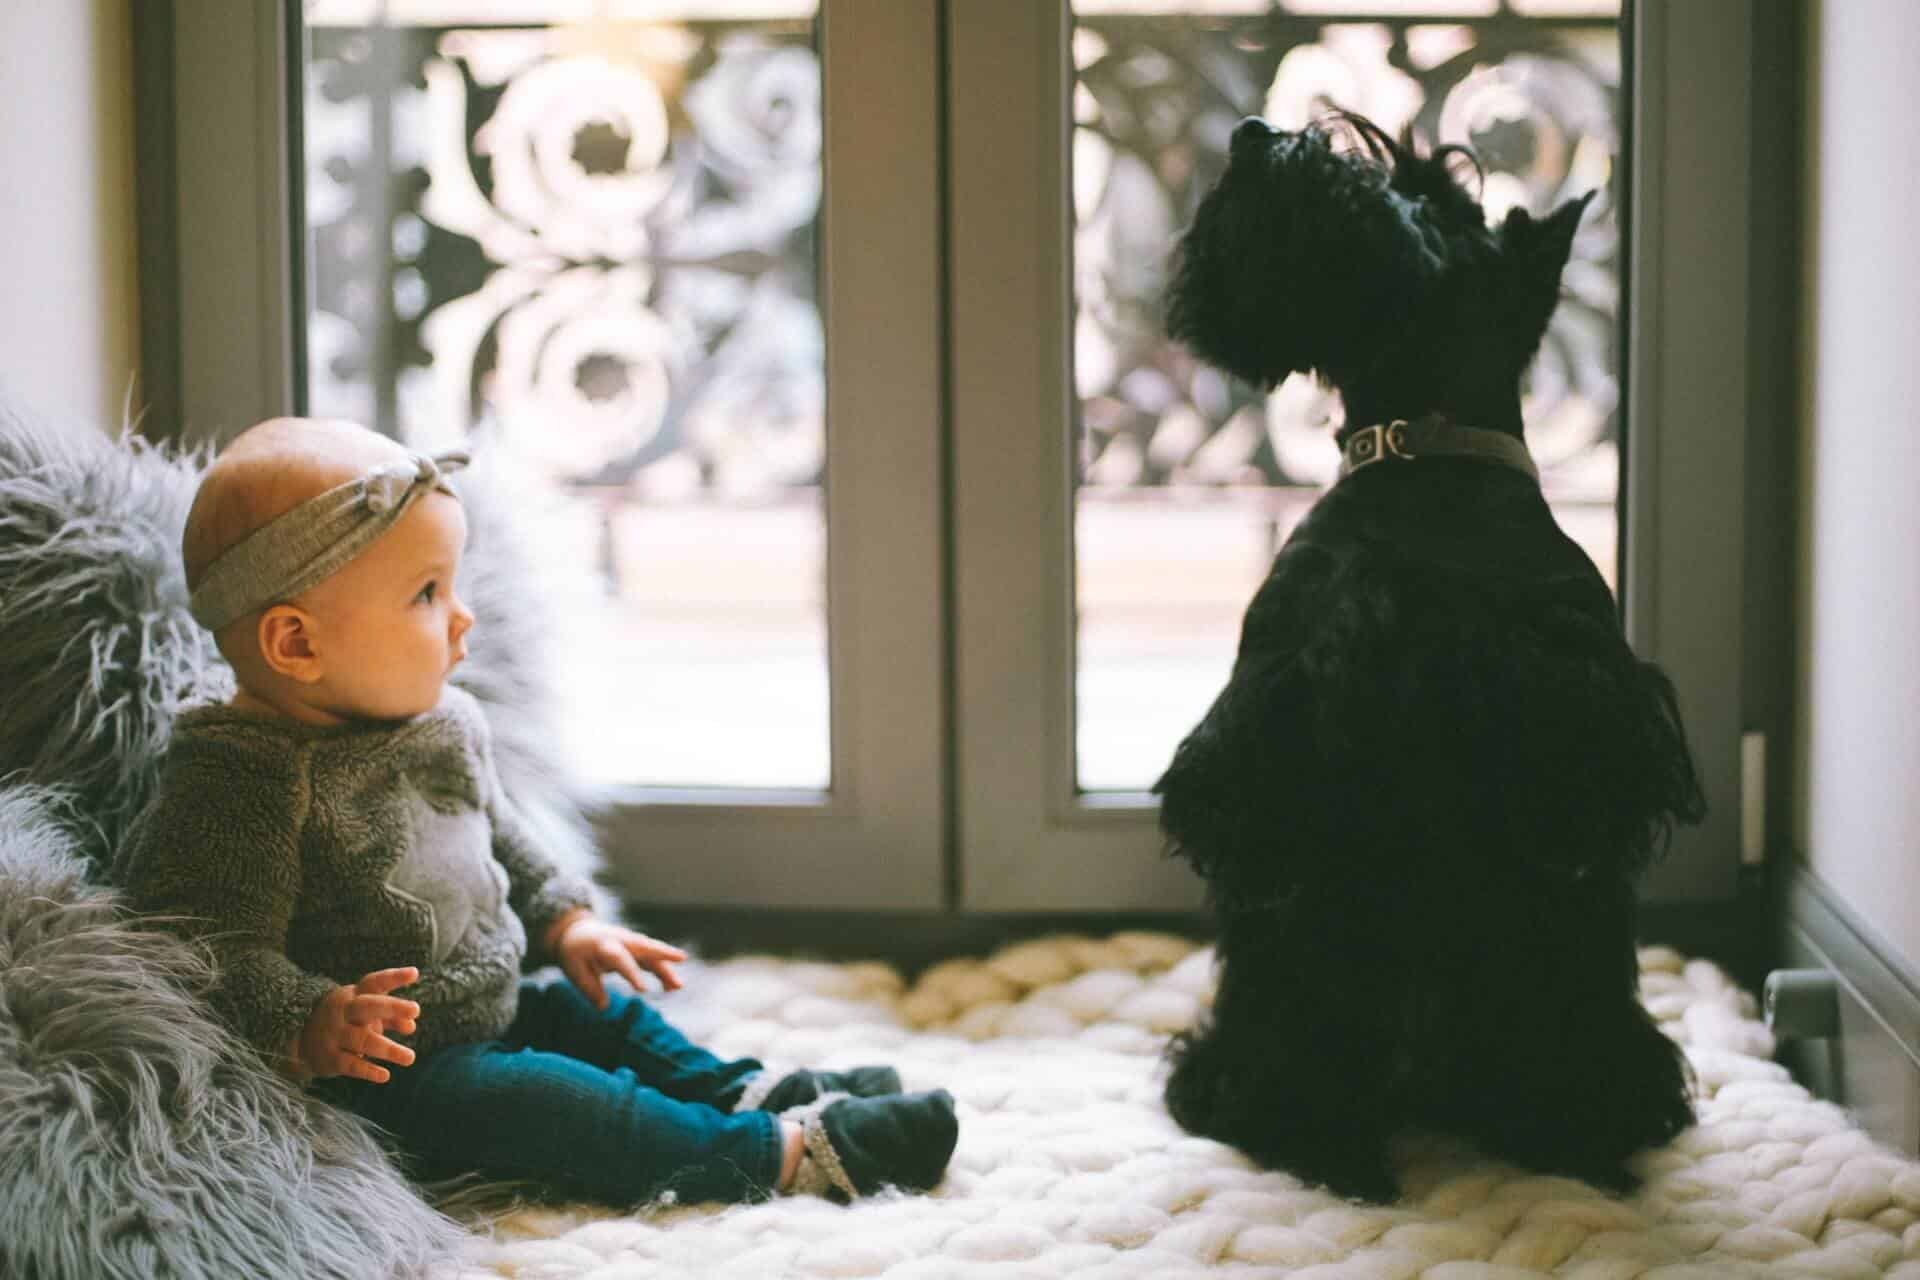 Dogs and Babies: How to Prepare Before Bringing Home a New Pooch